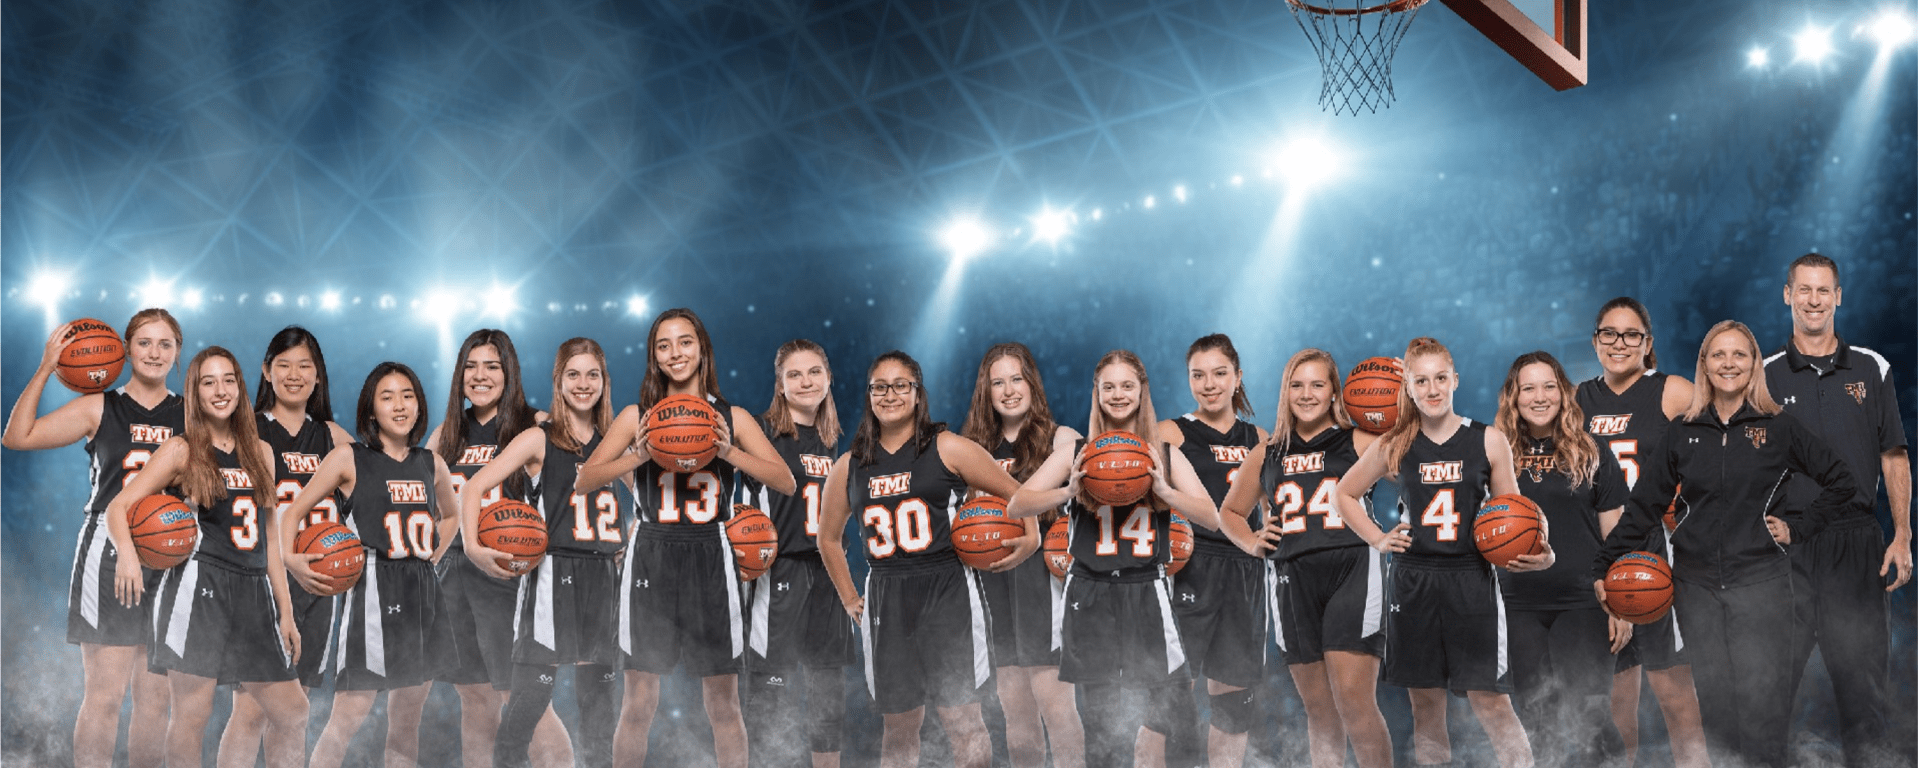 Team photo of the TMI Episcopal Varsity Girls Basketball Team